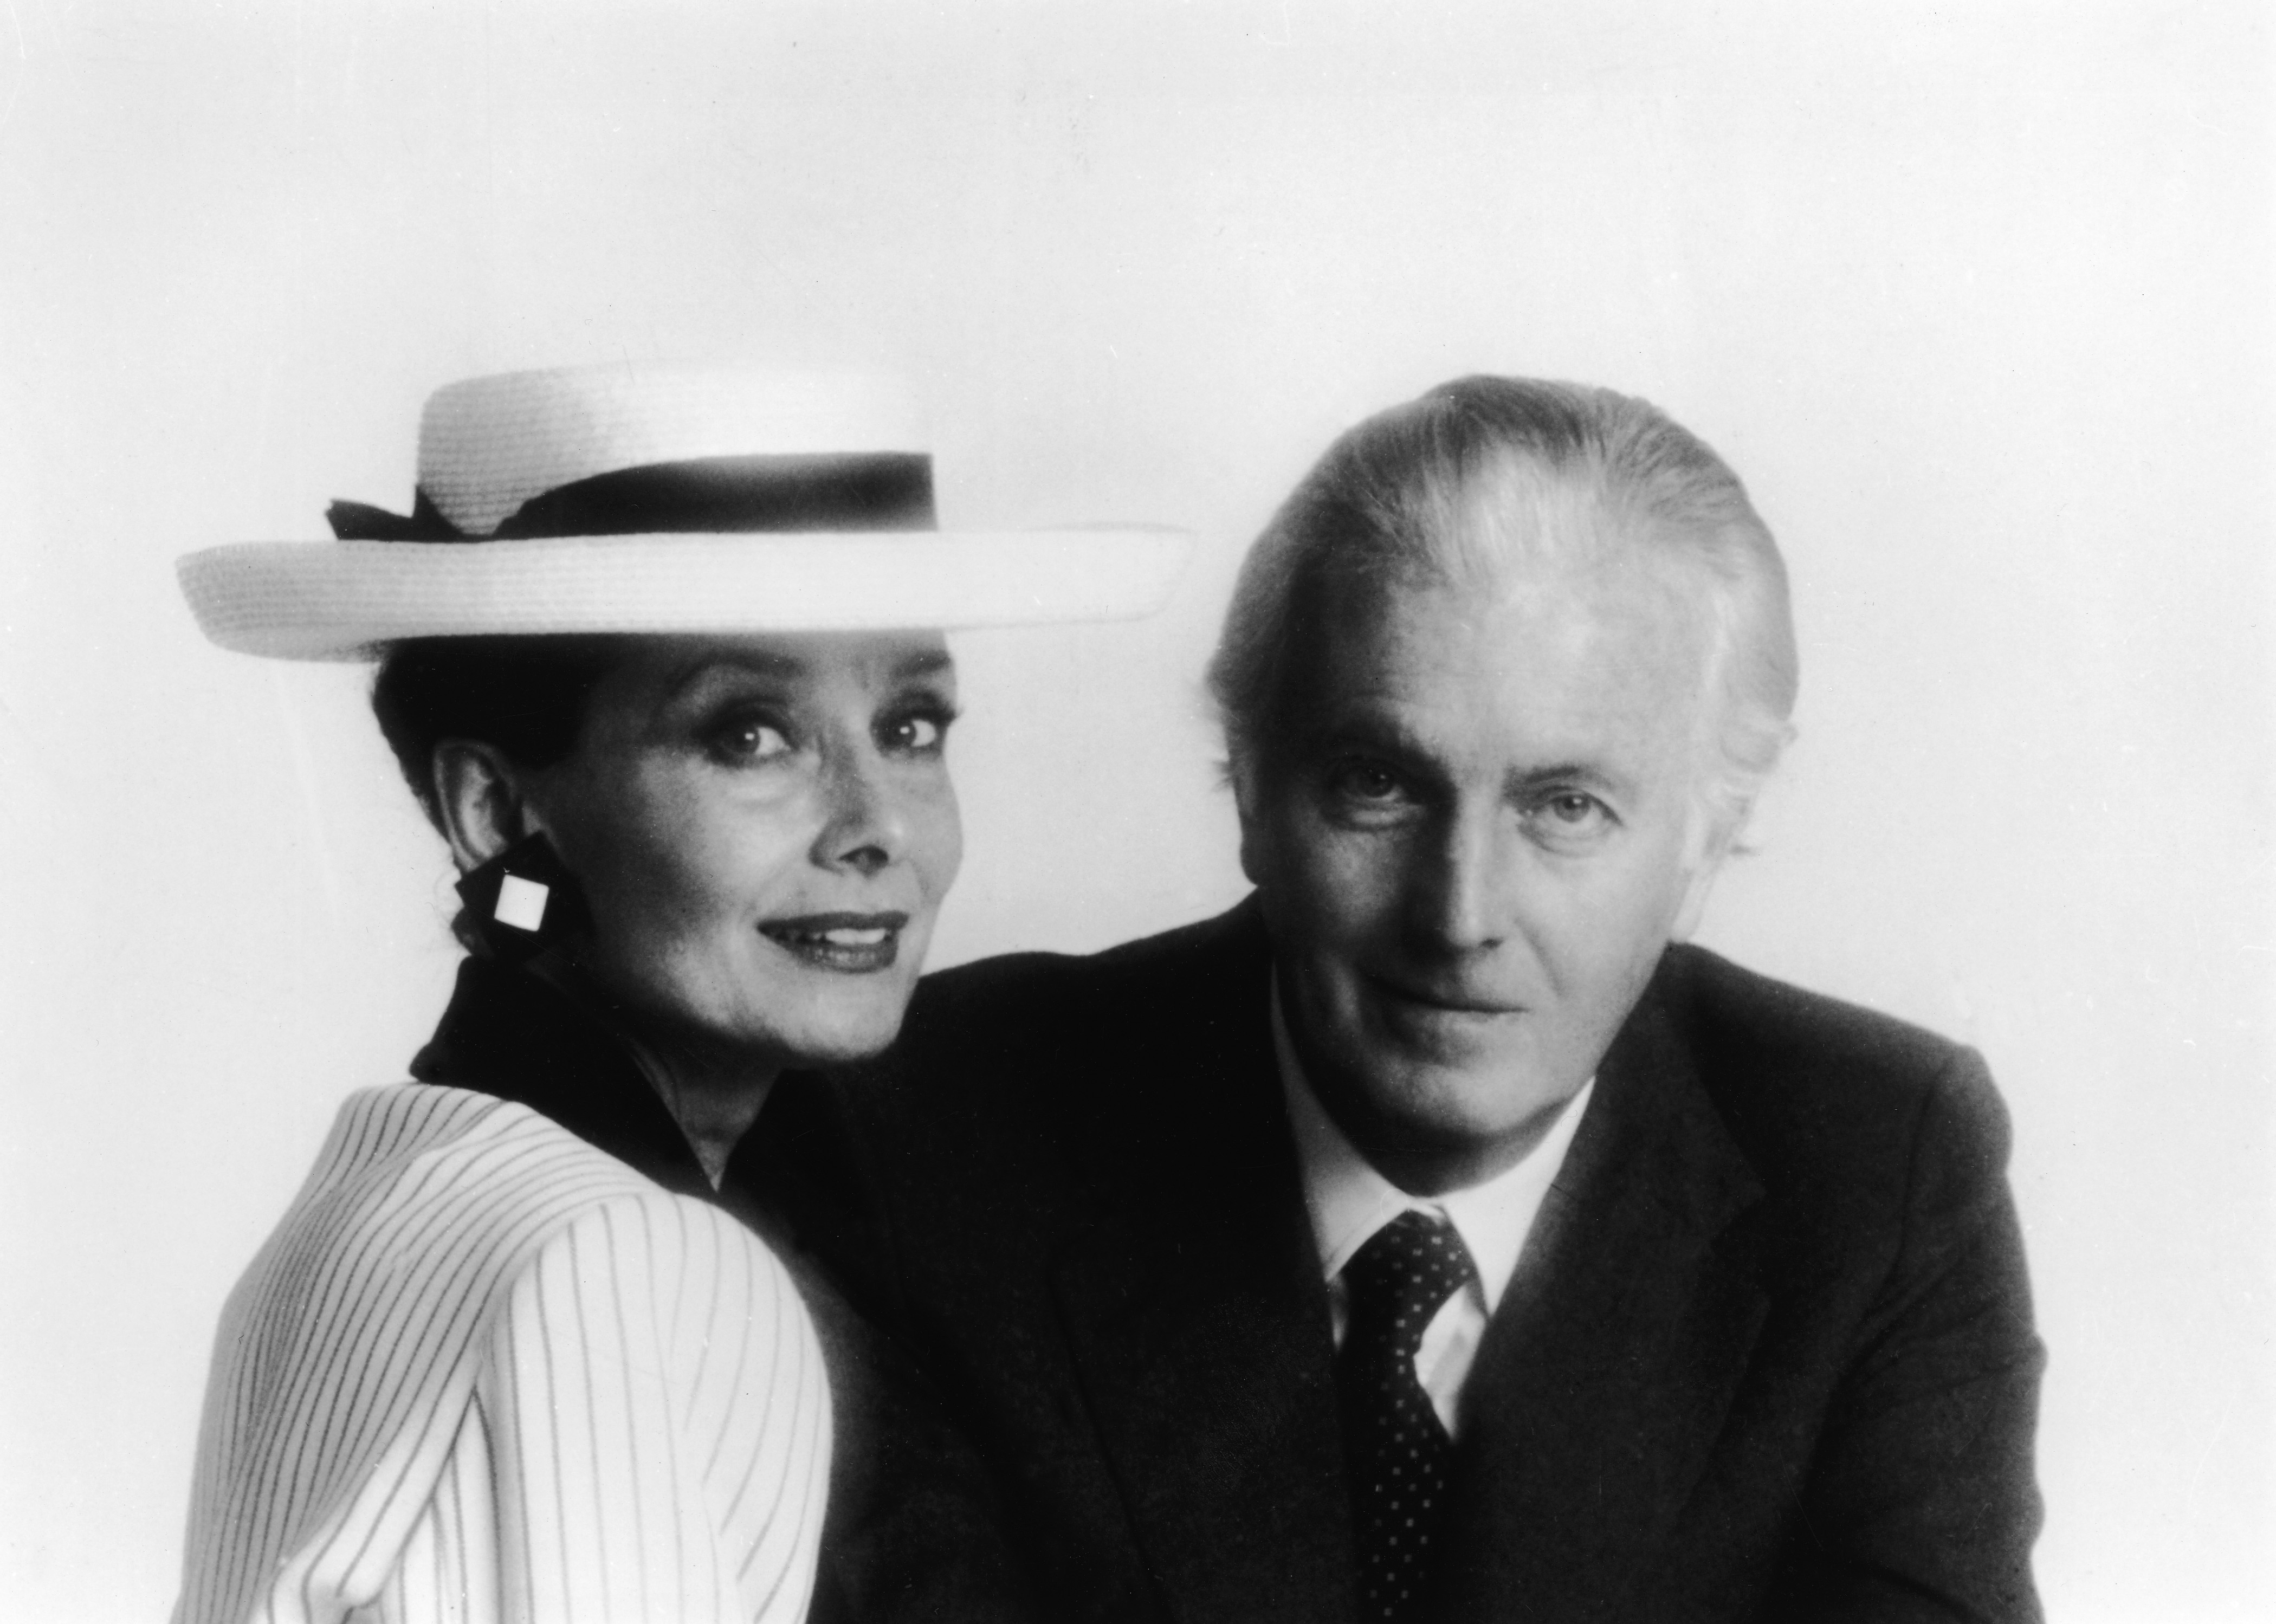 Audrey Hepburn and Givenchy, Philippe Venet Hubert de Givenchy, Hubert de Givenchy Partner